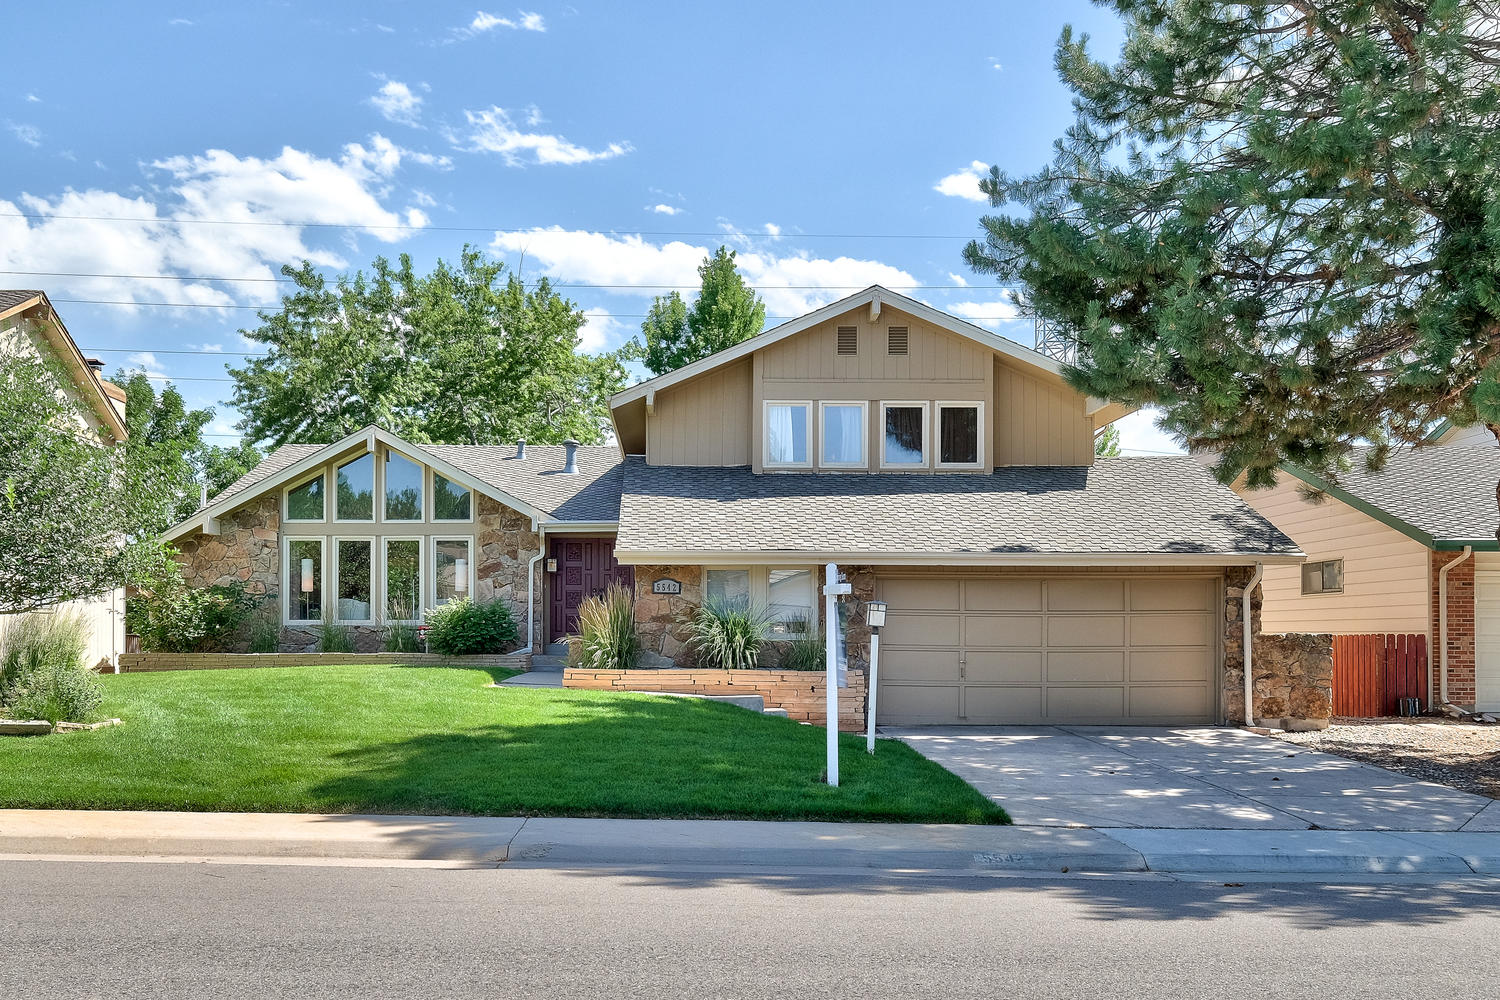 5542 E Caley Ave, Centennial, CO 80121